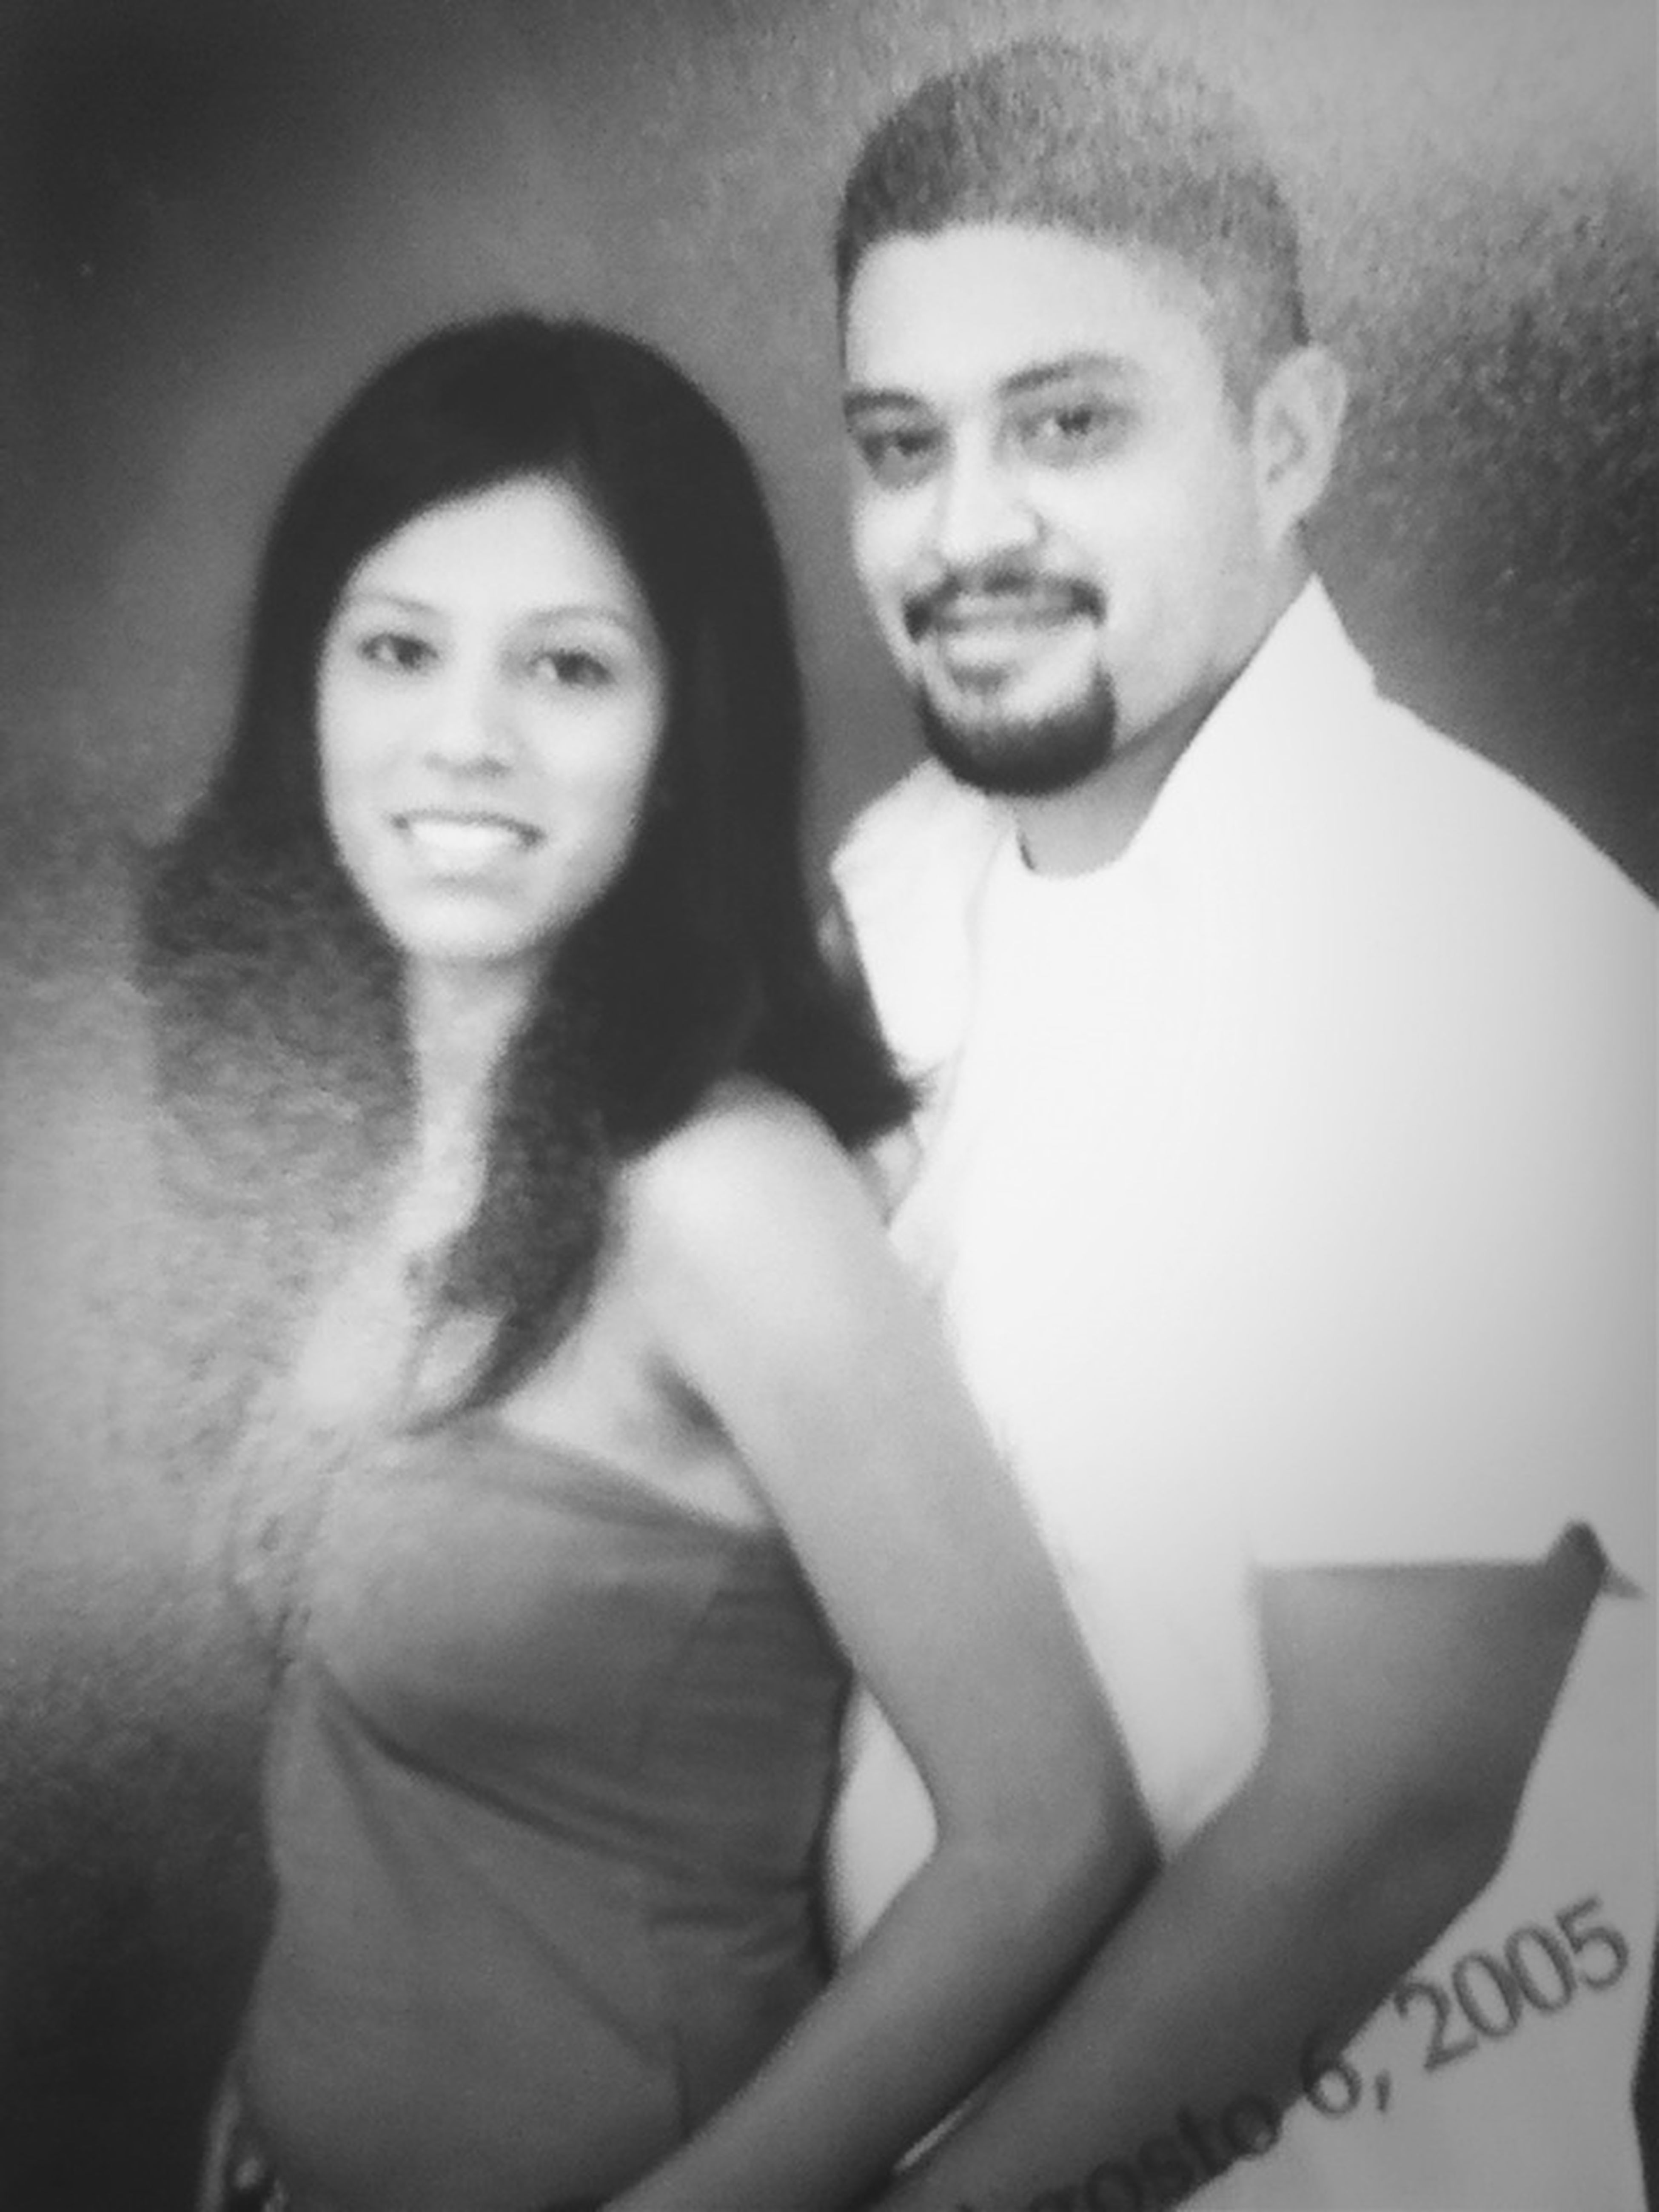 Goin To Miss You Forever Tia Tattiana You Were Like My 2nd Mom Rip: 01-21-85~01-04-13